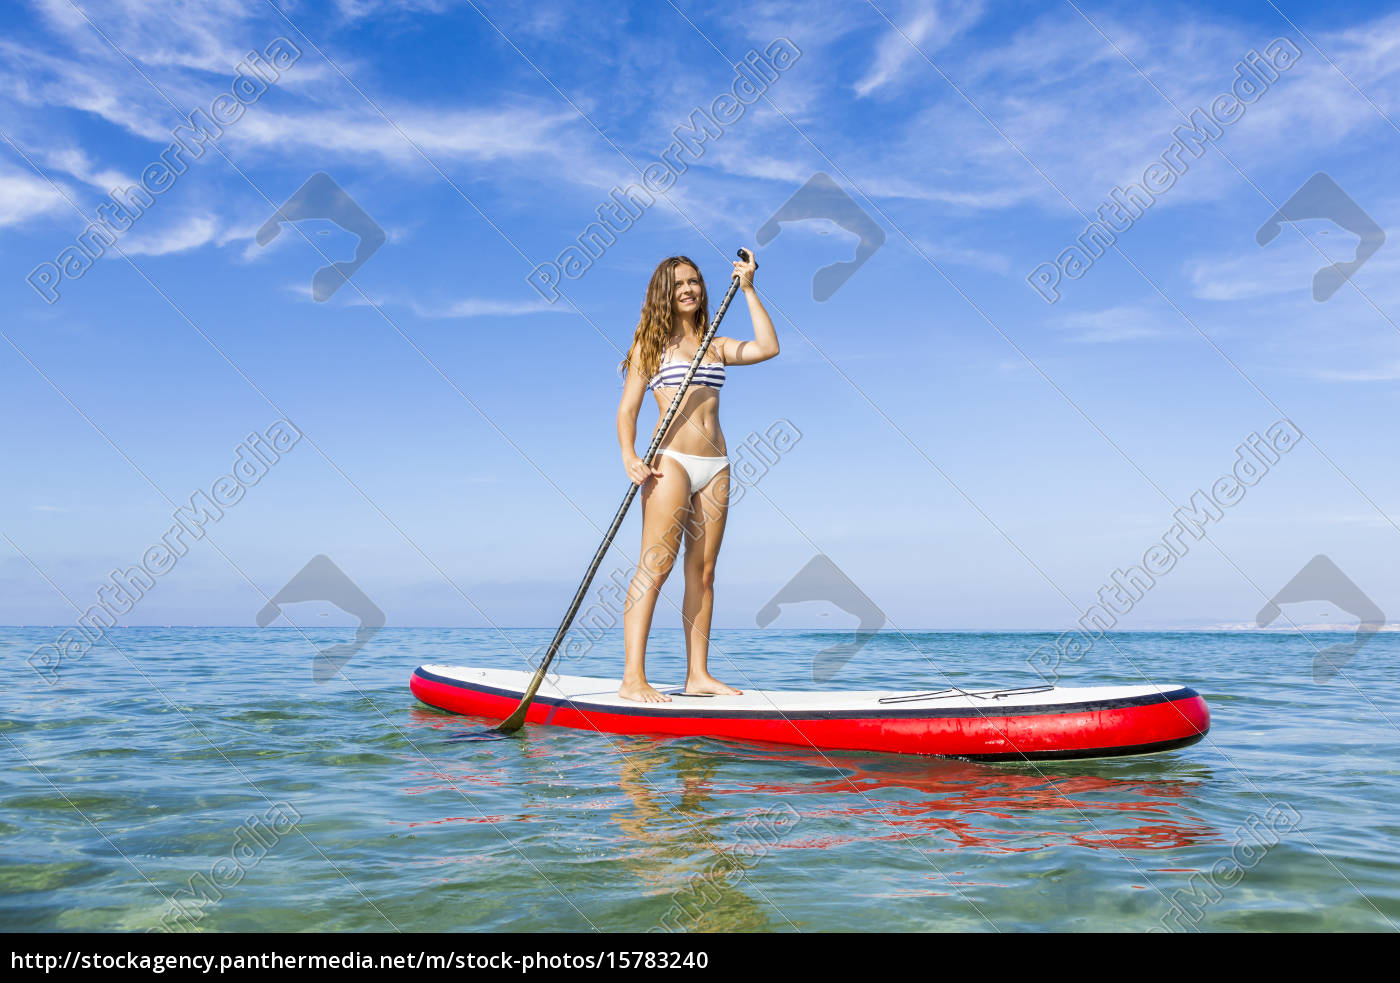 woman, practicing, paddle - 15783240